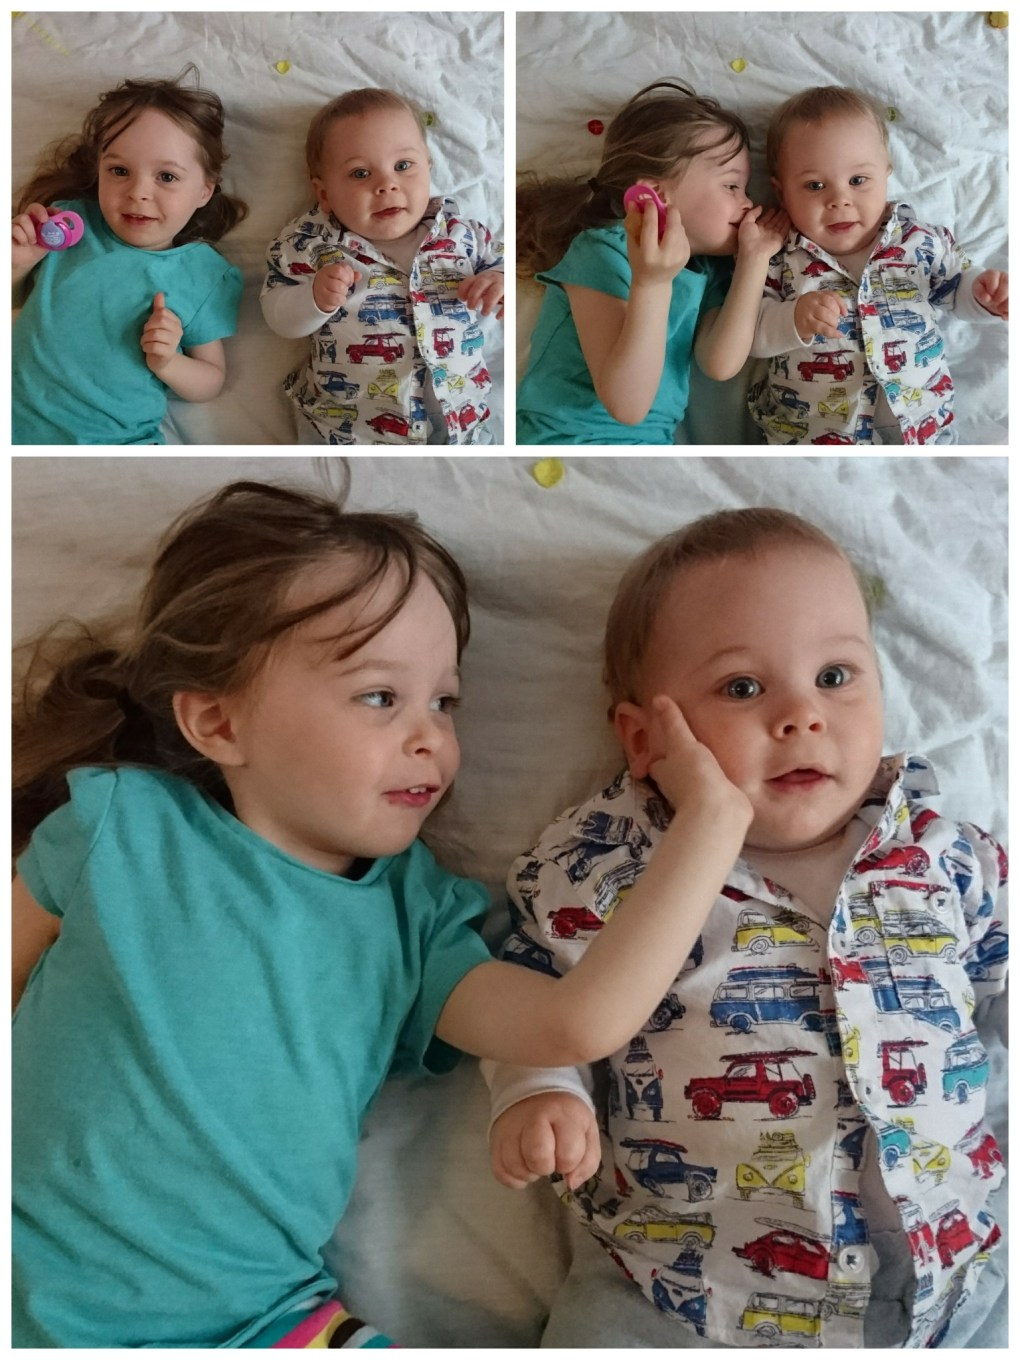 Sibling Love for this weeks Living Arrows post